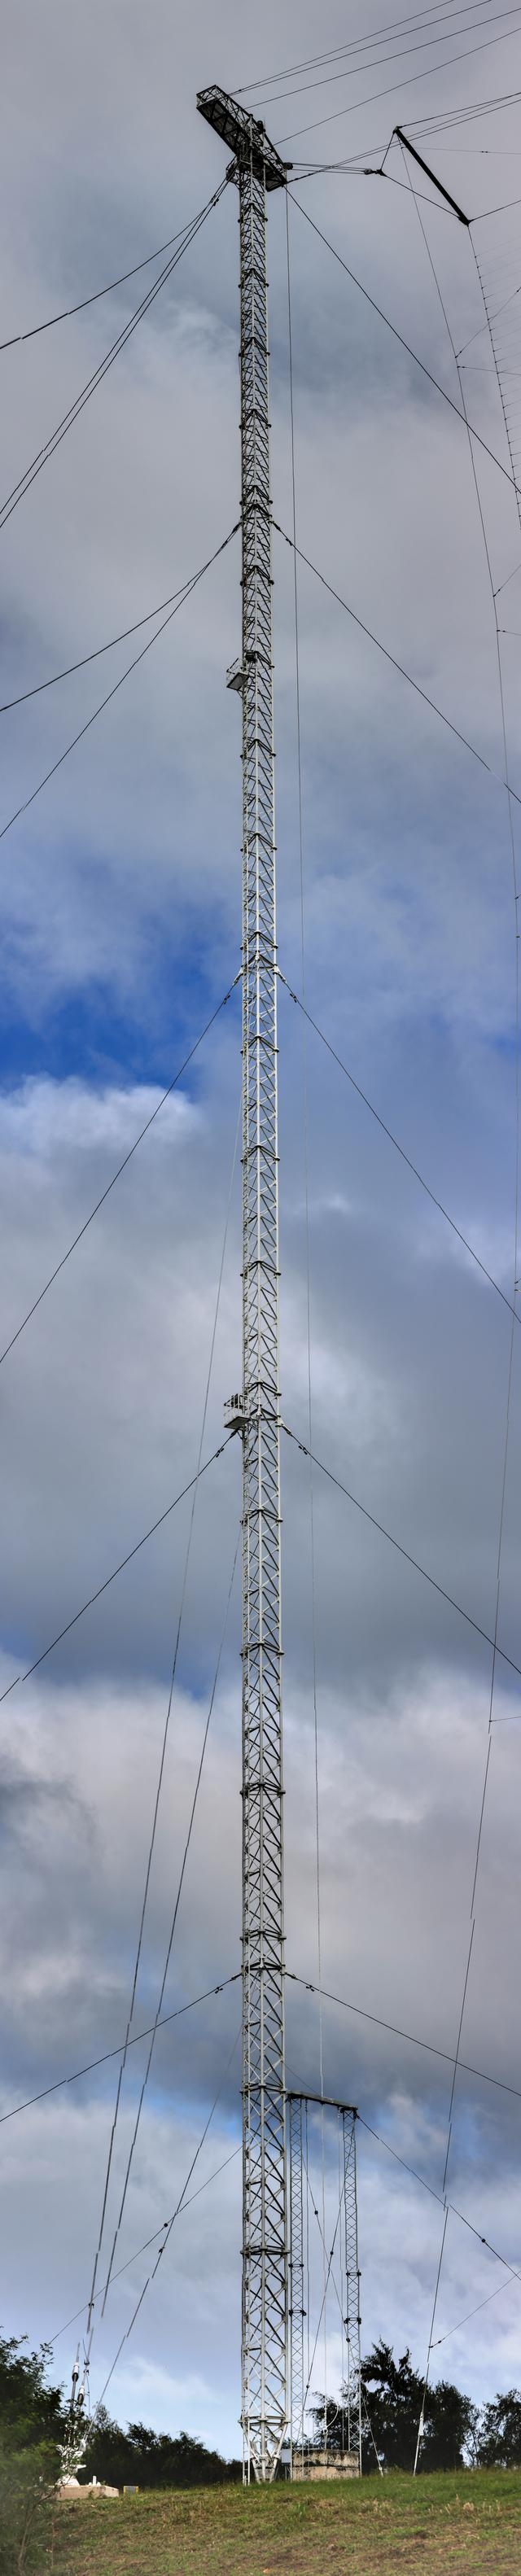 cell tower engineer